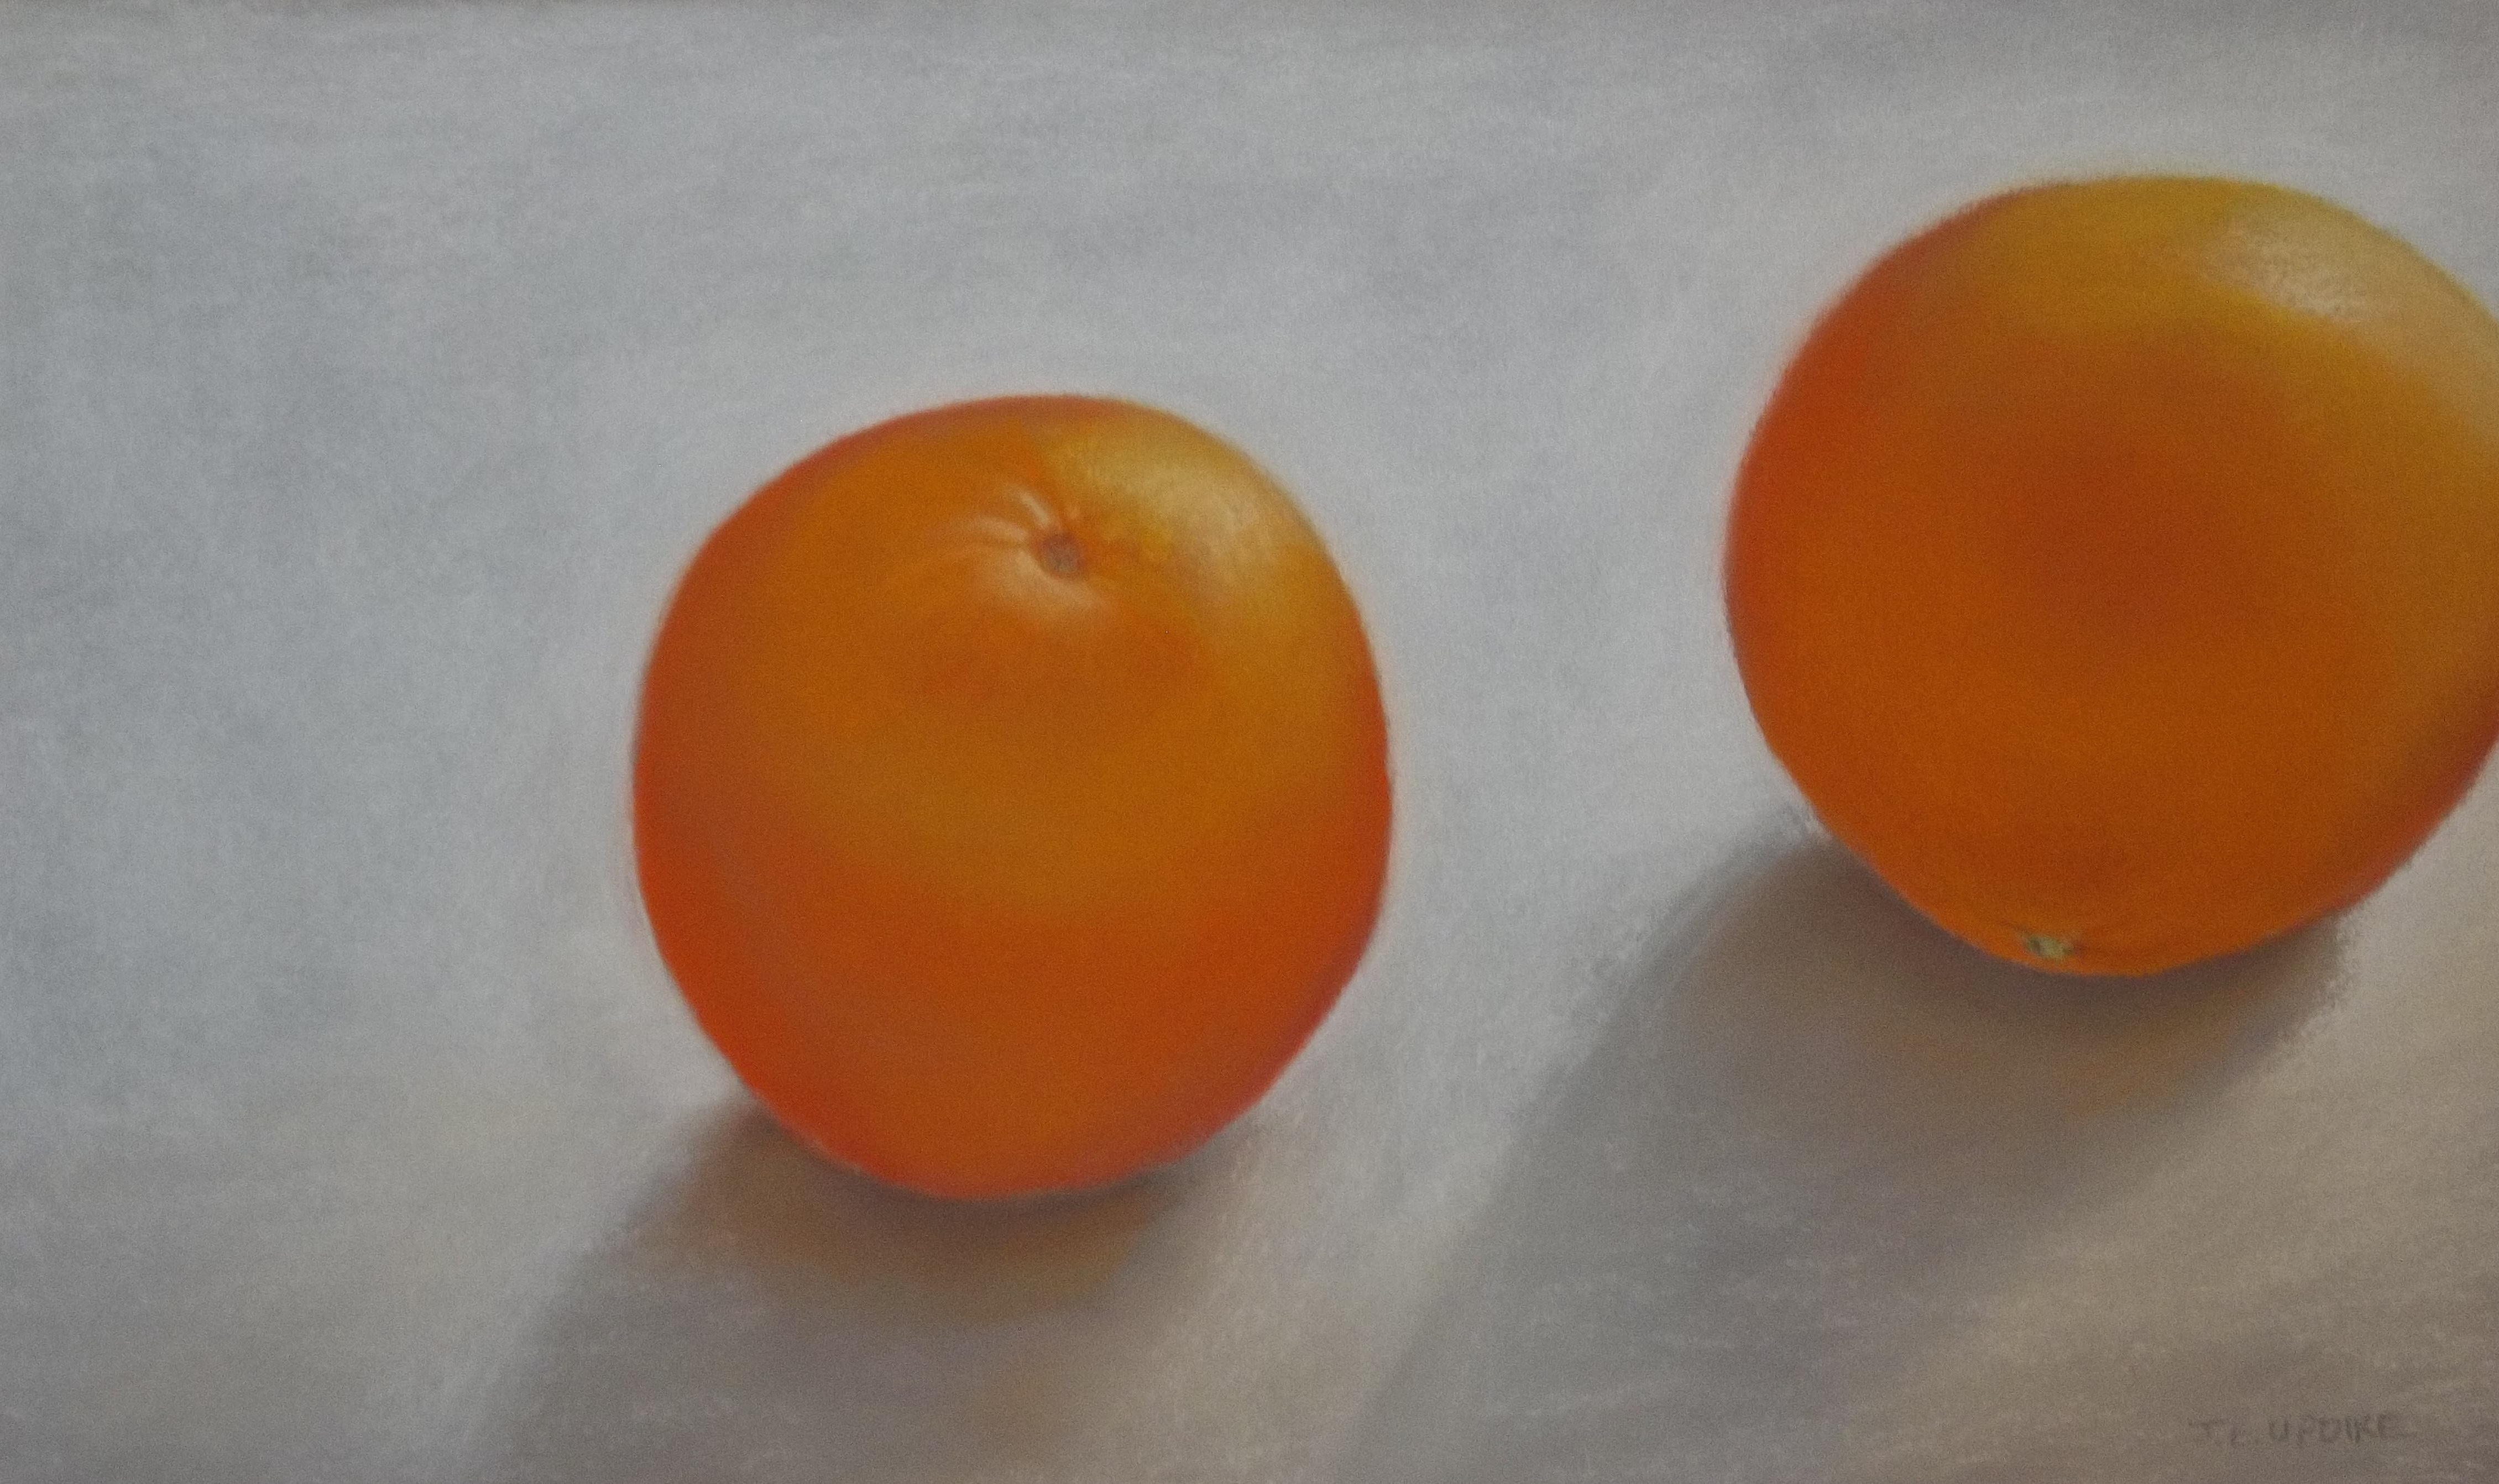 Two Navel Oranges